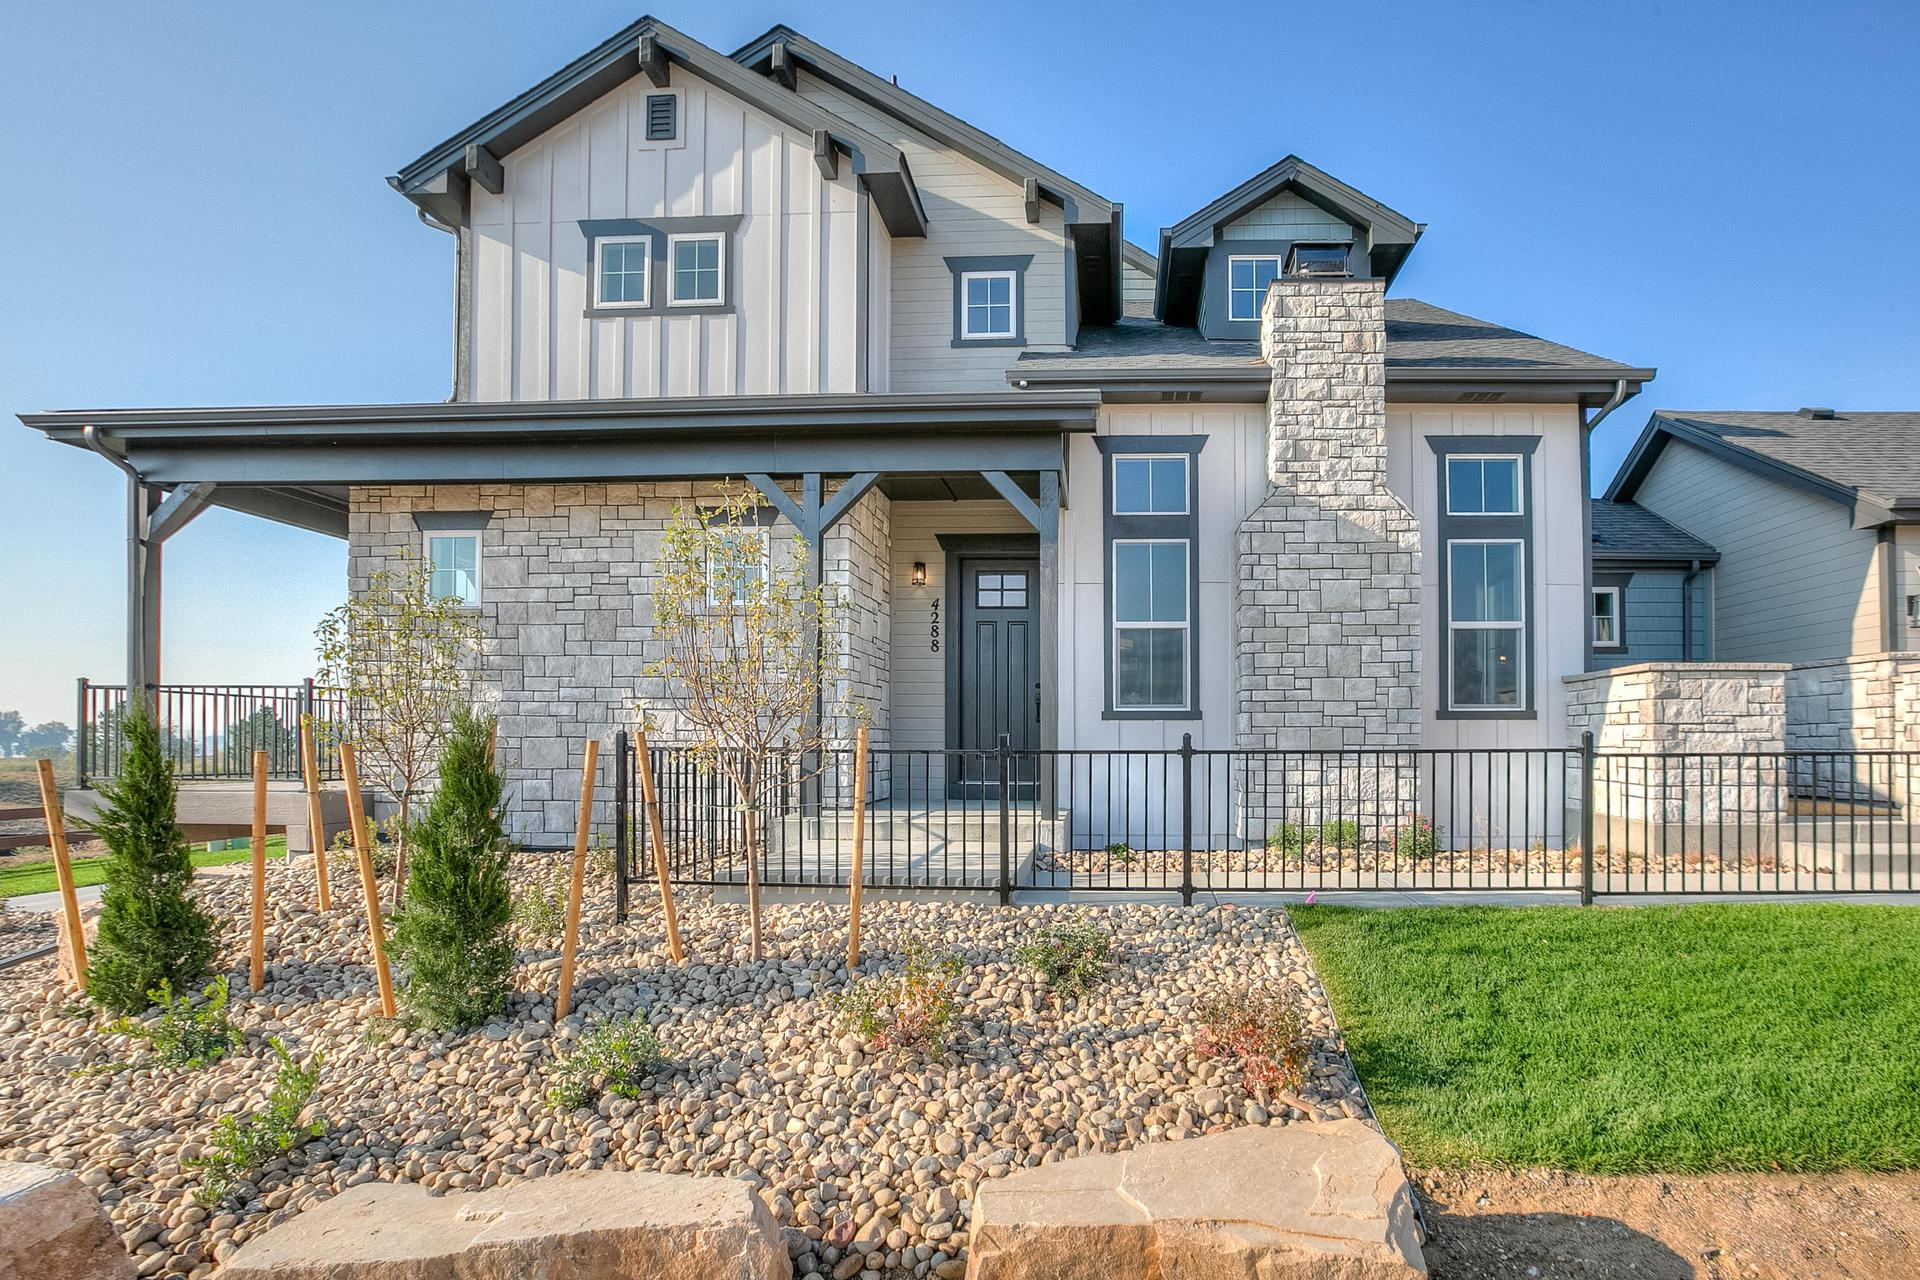 5 Reasons to Buy a Townhome in Northern Colorado